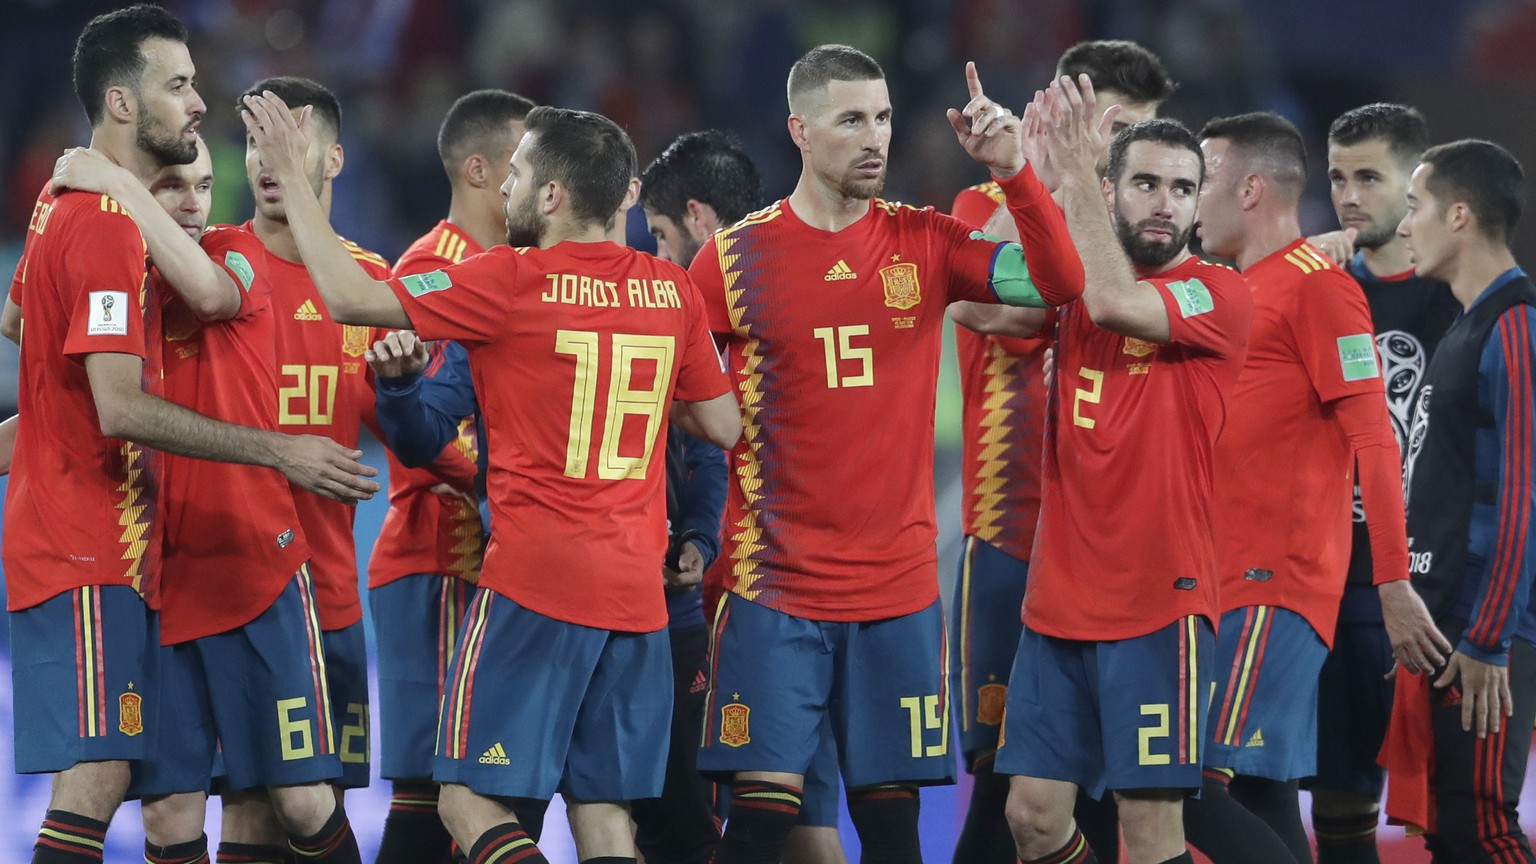 Spain players celebrate after the group B match between Spain and Morocco at the 2018 soccer World Cup at the Kaliningrad Stadium in Kaliningrad, Russia, Monday, June 25, 2018. (AP Photo/Petr David Josek)